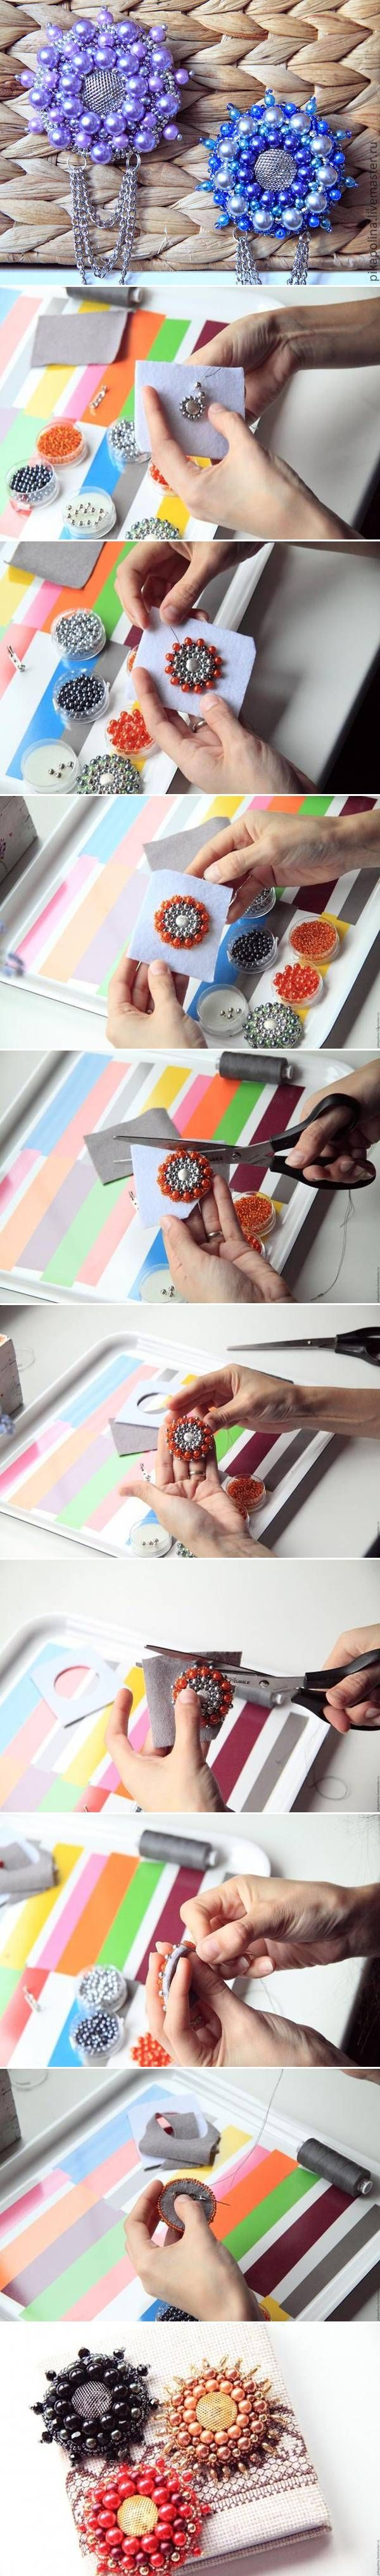 DIY Beads Flower Brooch DIY Projects | UsefulDIY.com